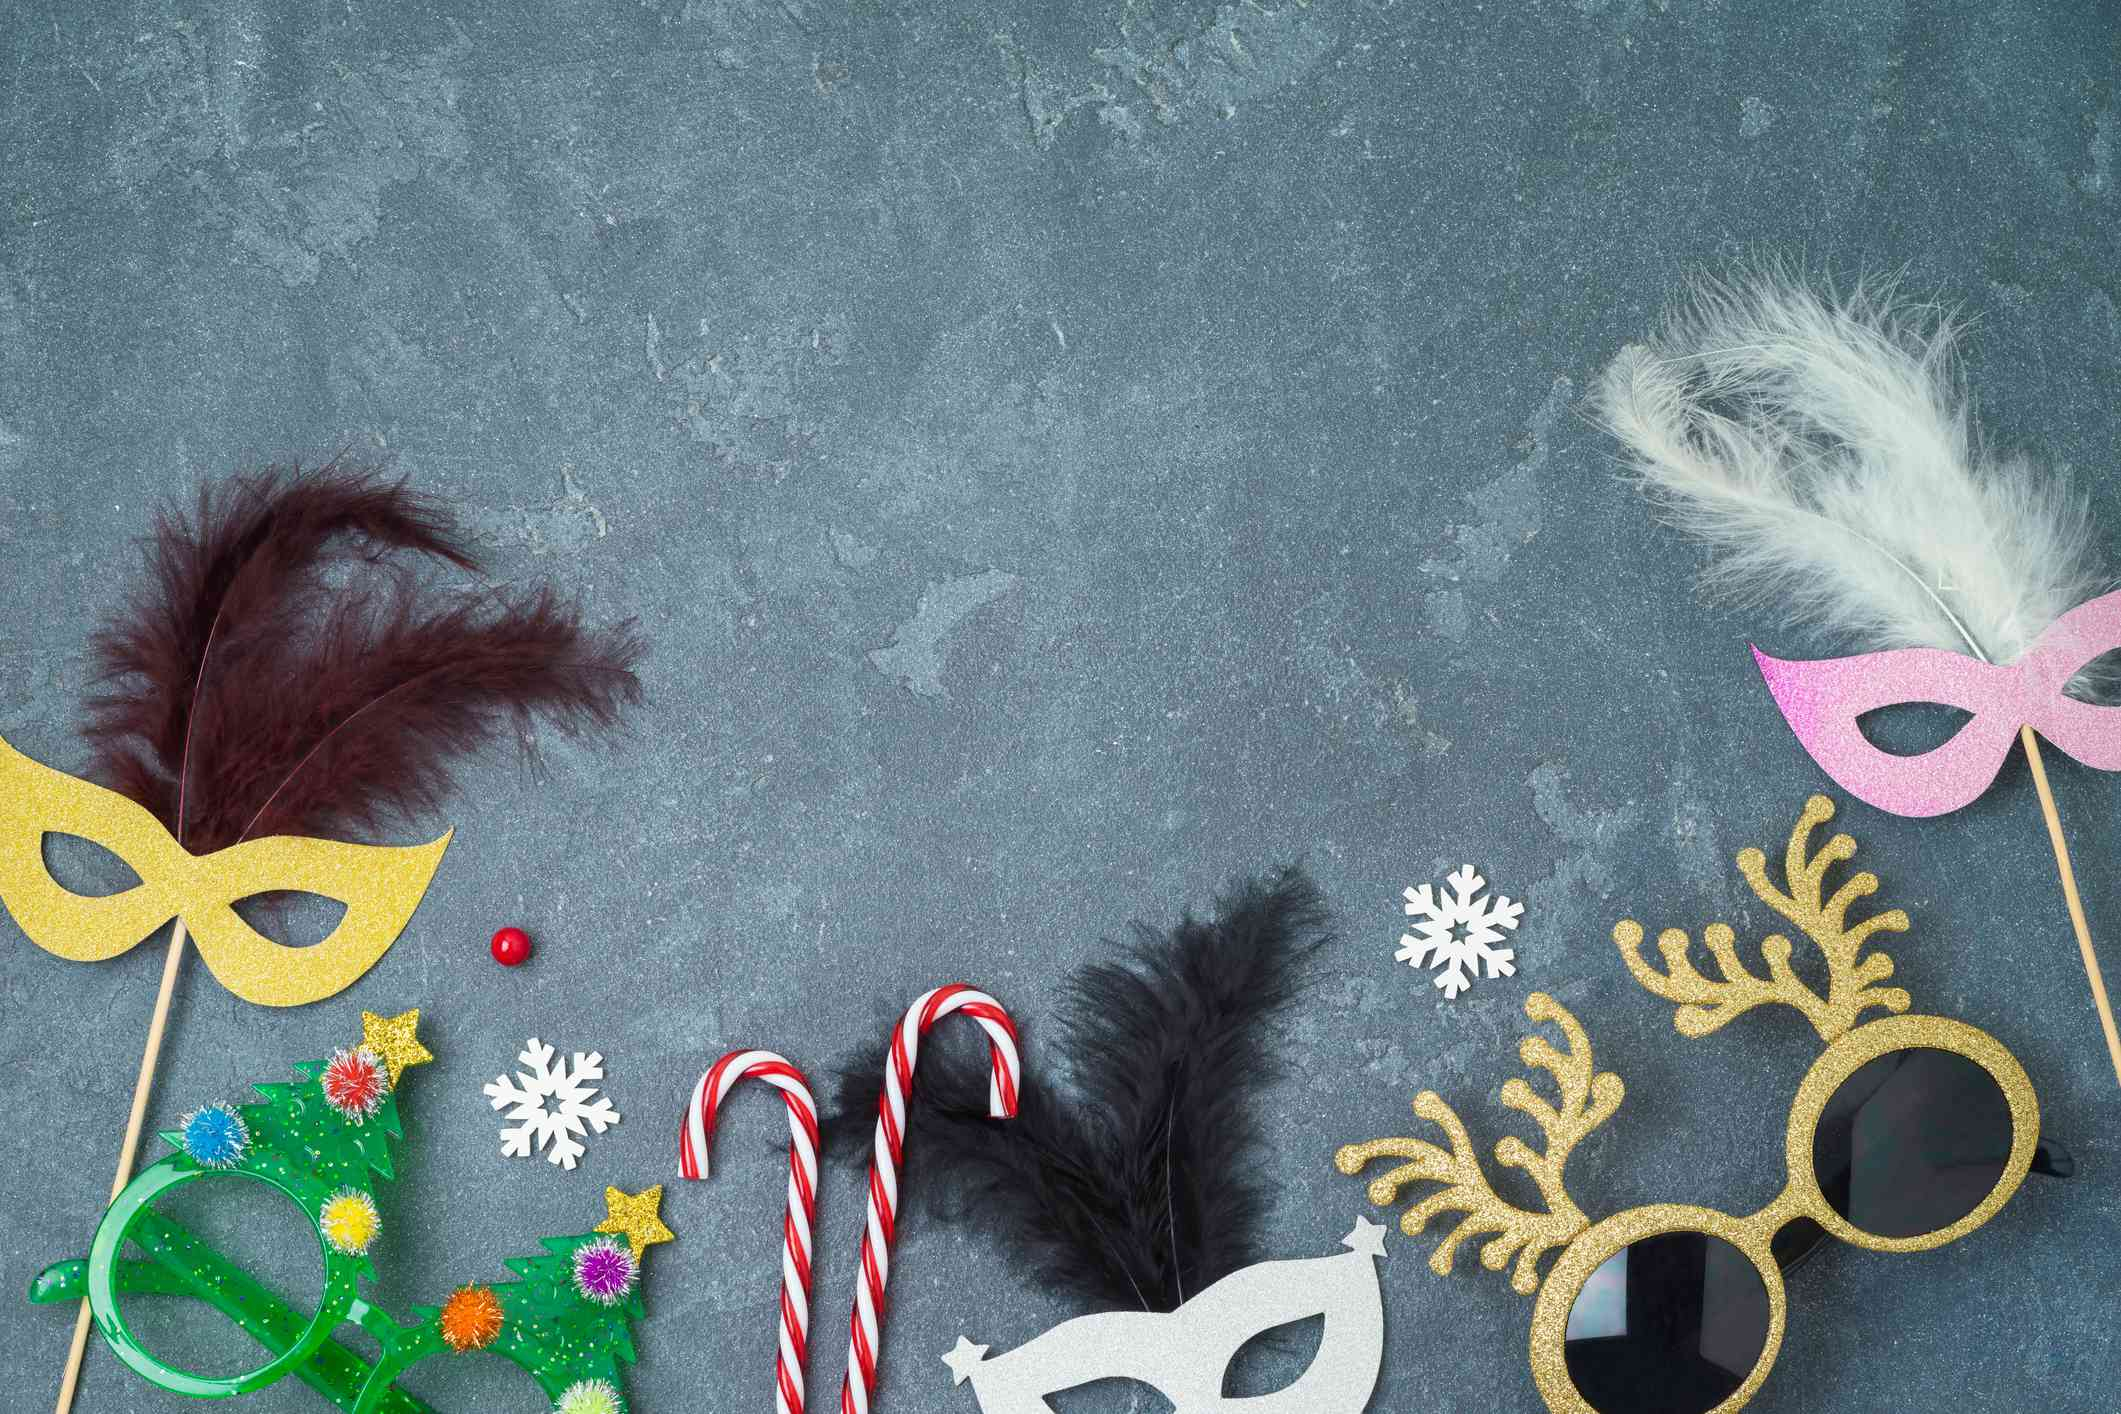 Carnival and New year party background with carnival masks, funny eyeglasses and photo booth props